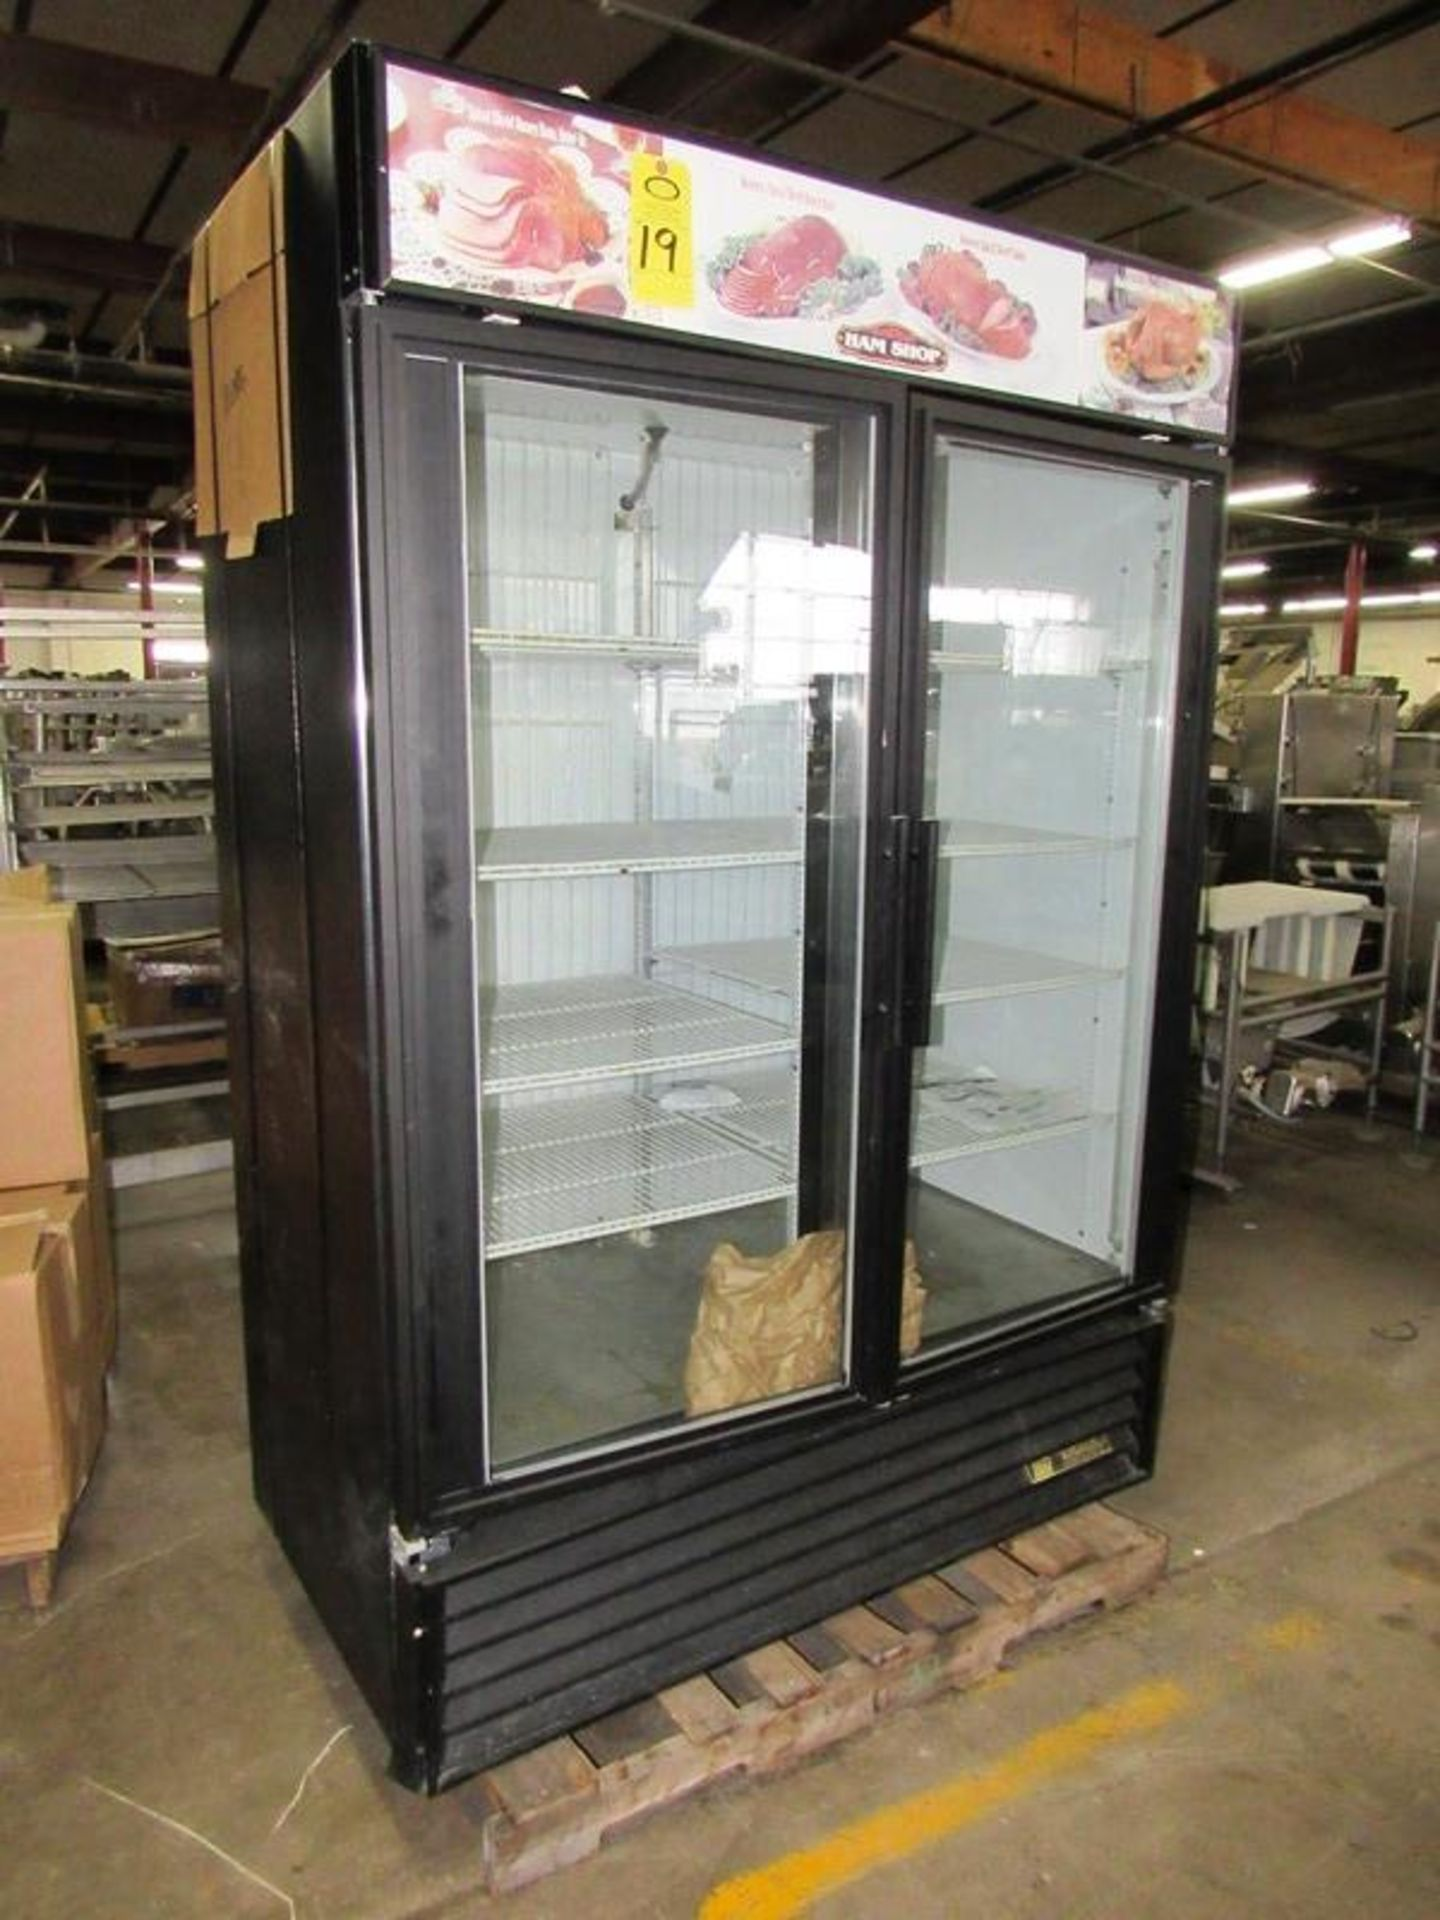 "True Mdl. GDM-49 Freezer, 49 cu. ft., double door, 8 shelves, 54 1/8"" L X 29 7/8"" D X 78 5/8"" T, 1/2"